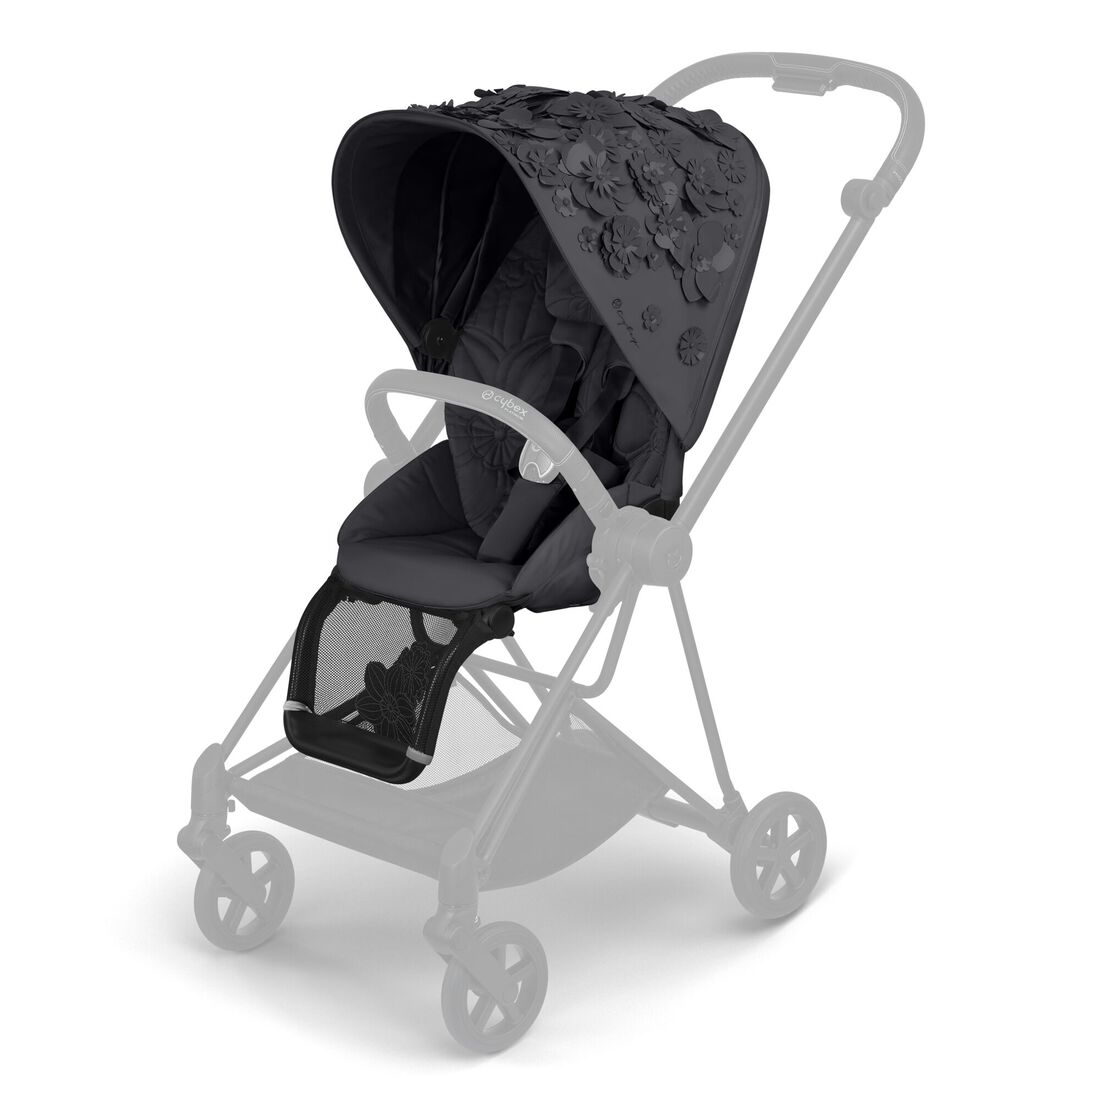 CYBEX Mios Seat Pack - Dream Grey in Dream Grey large image number 1